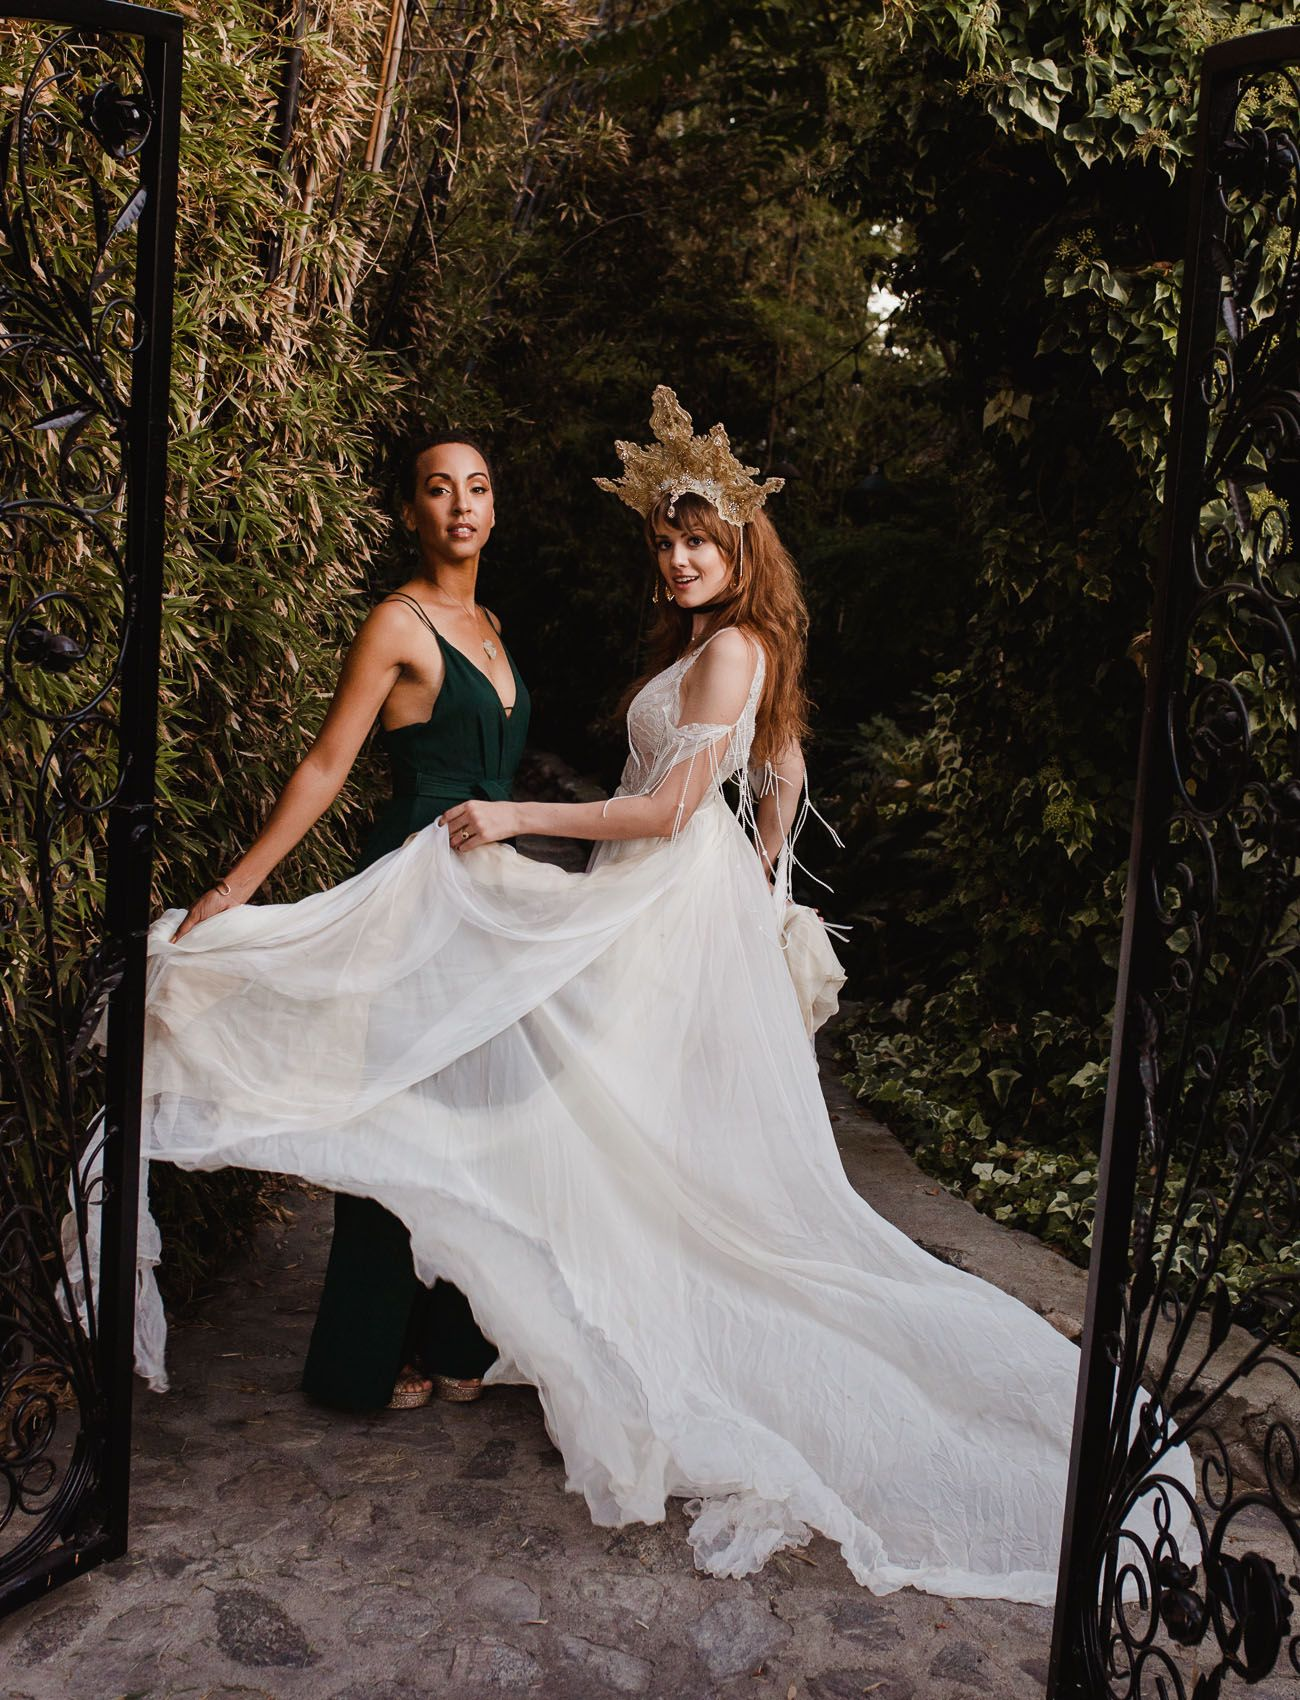 Gold Dust Women Witchy Stevie Nicks Inspired Wedding In The Shadow Hills Green Wedding Shoes Wedding Inspiration Wedding Boho Wedding Gowns [ 1700 x 1300 Pixel ]